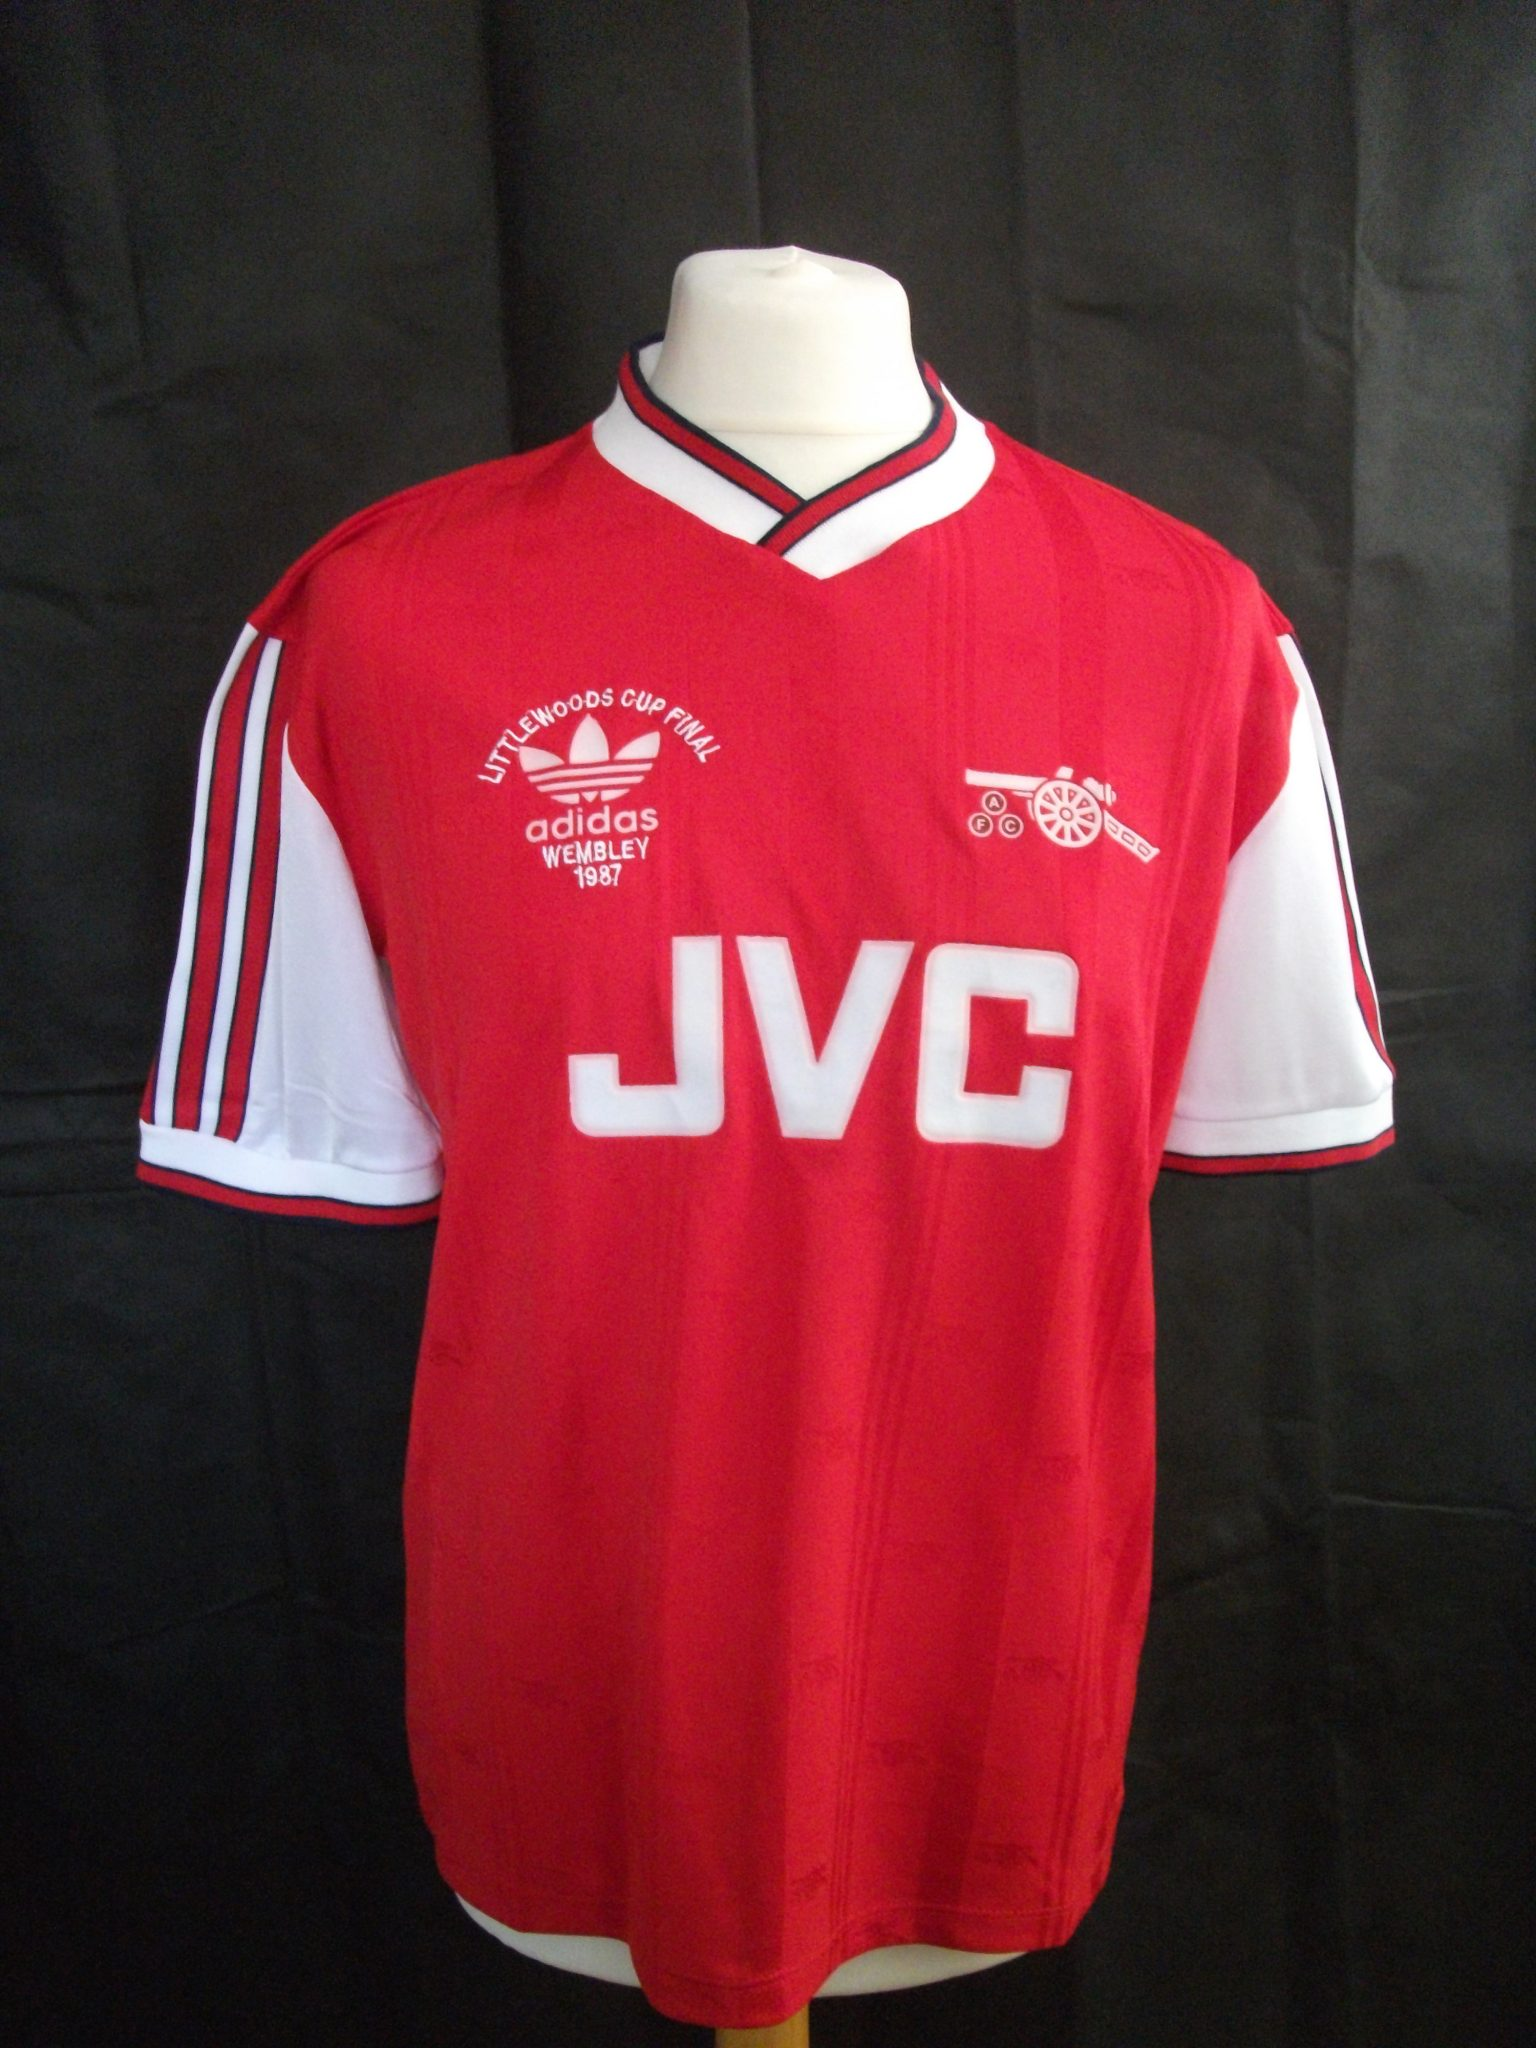 Vintage Adidas Arsenal 1987 football shirt1